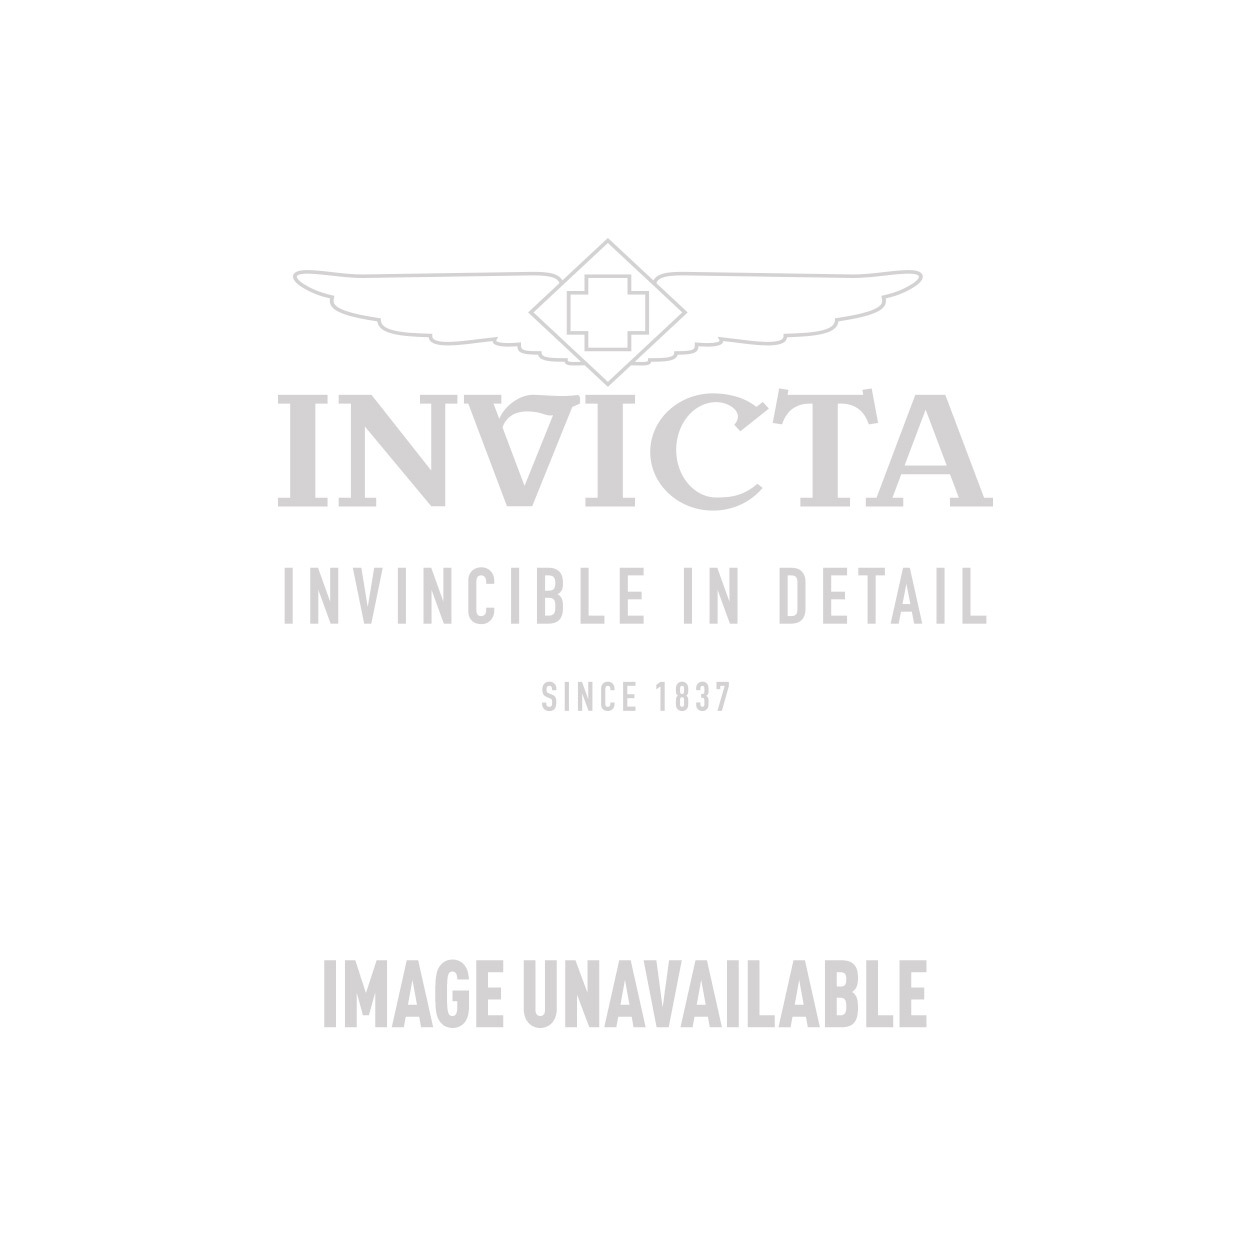 Invicta Aviator Swiss Movement Quartz Watch - Gunmetal, Stainless Steel case with Grey tone Polyurethane band - Model 15891